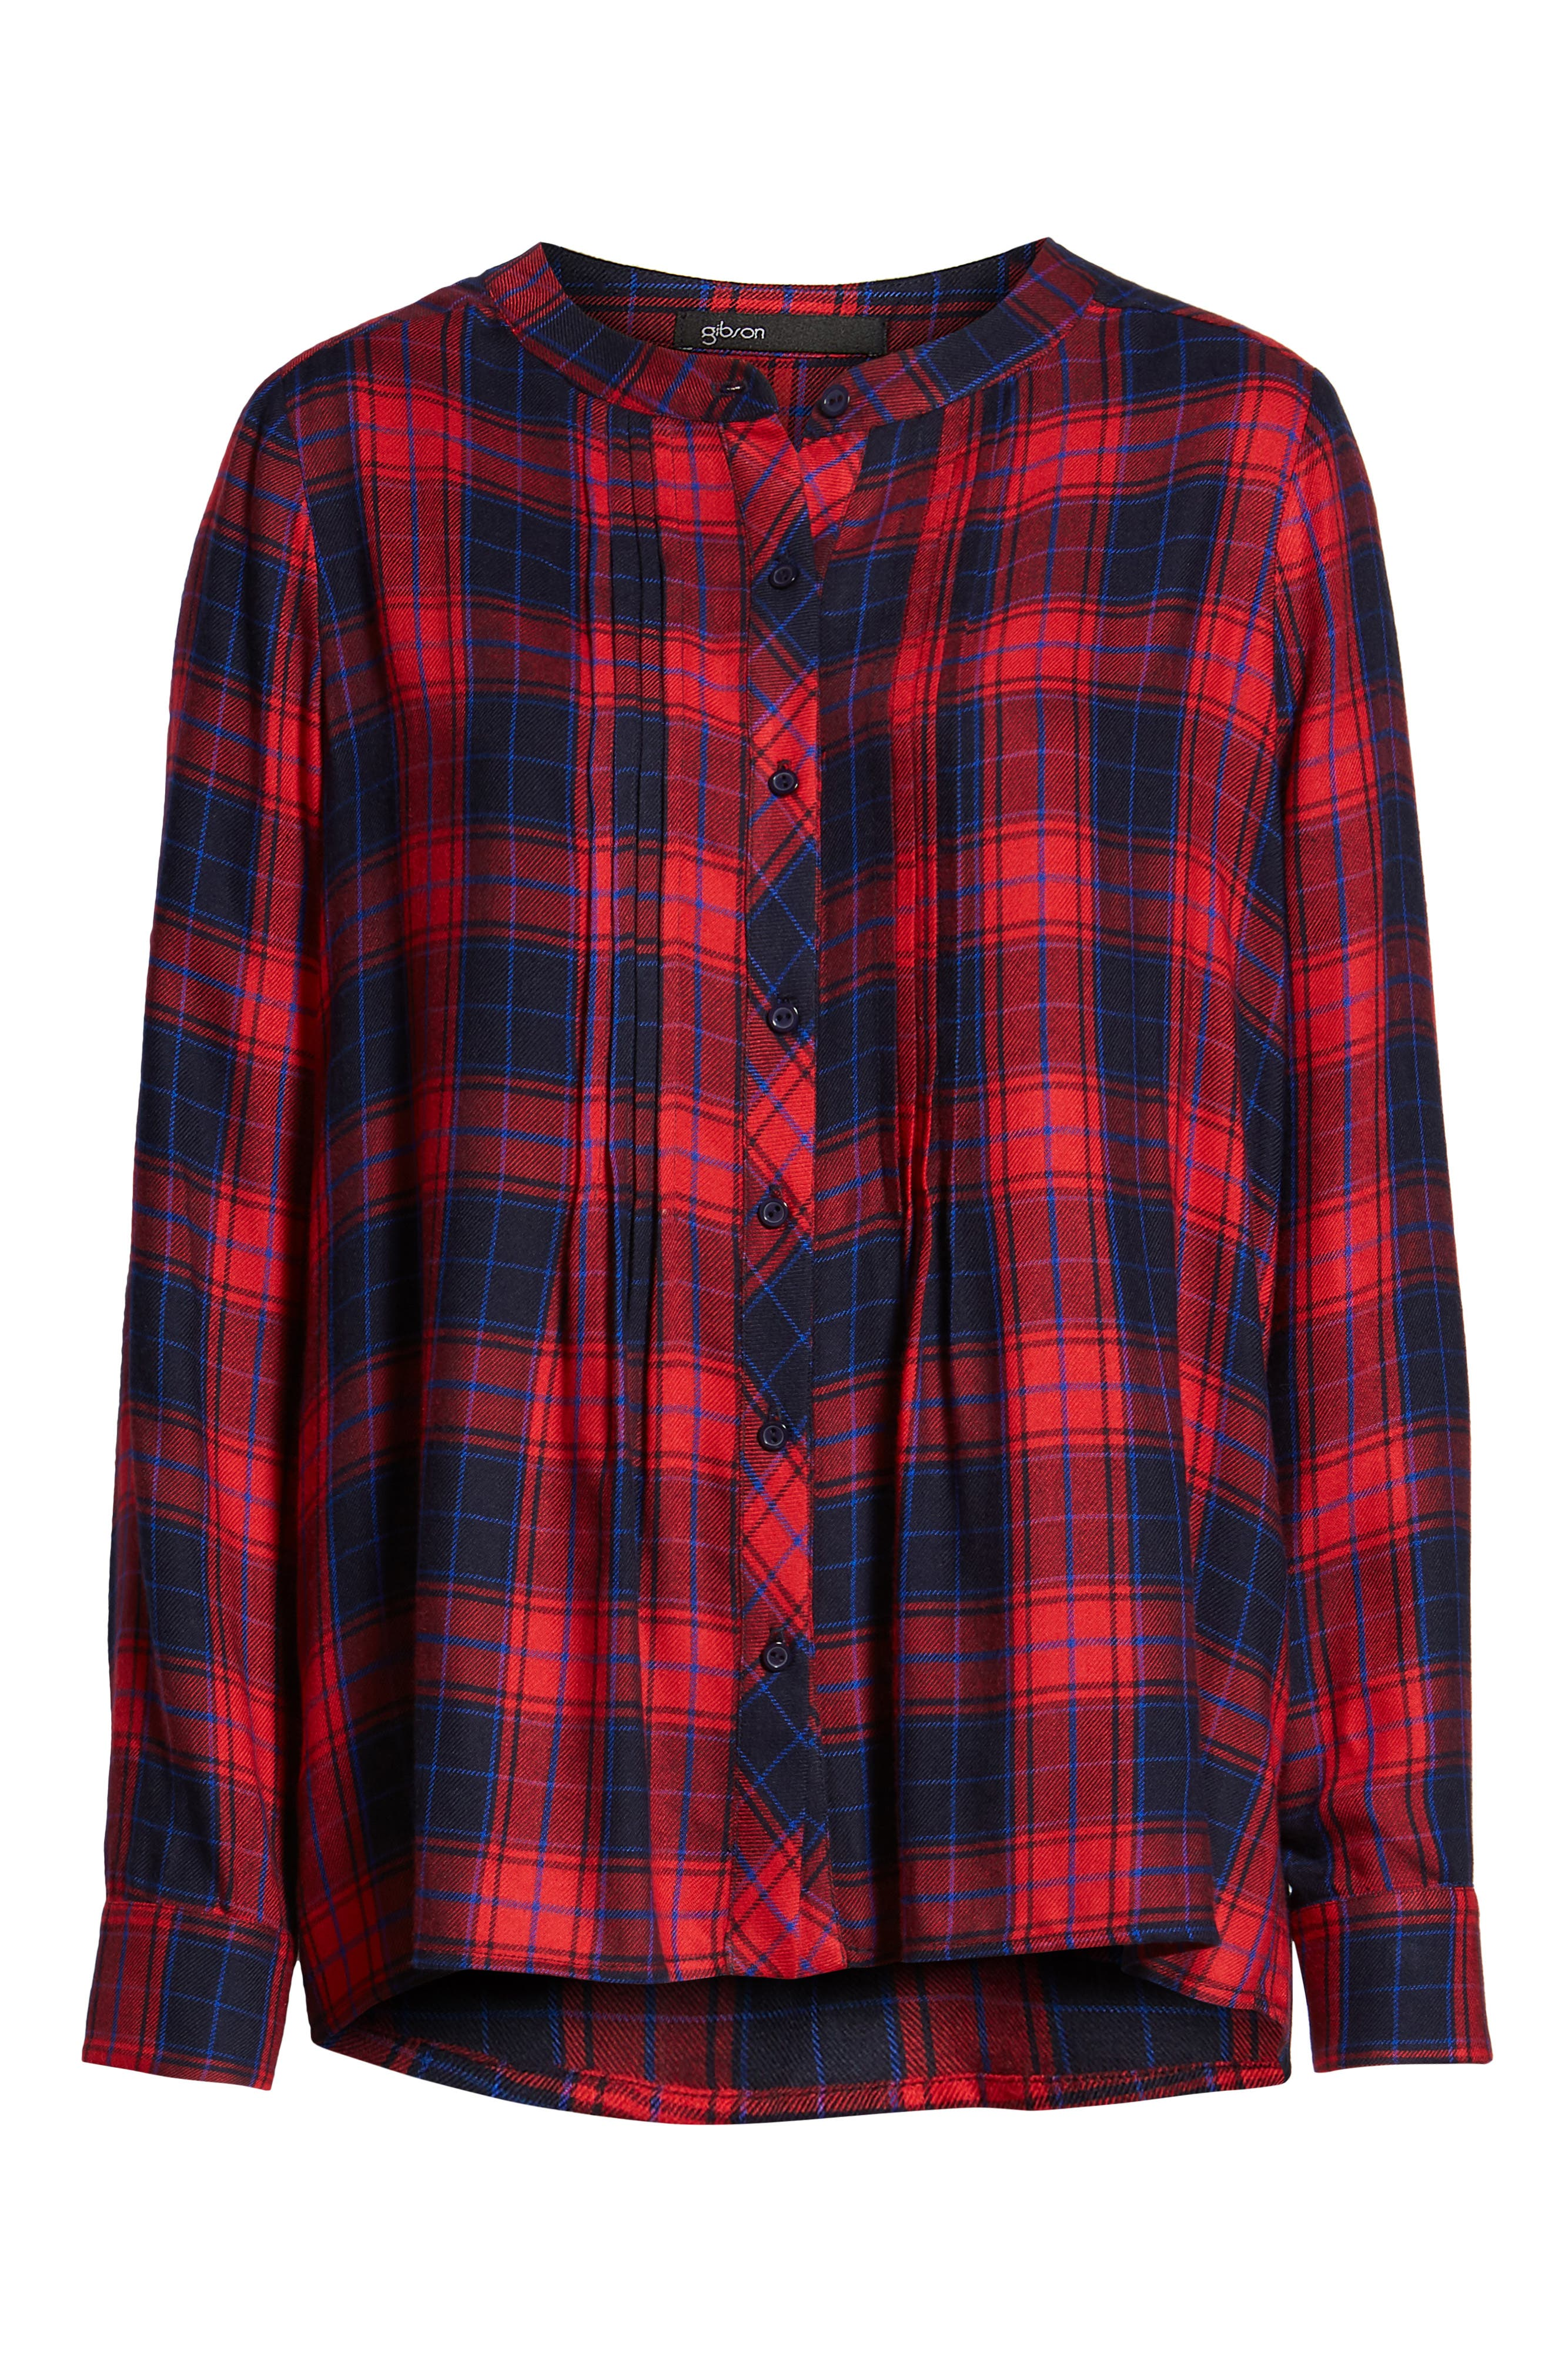 GIBSON, x Living in Yellow Ellen Brushed Check Shirt, Alternate thumbnail 6, color, RED / BLUE